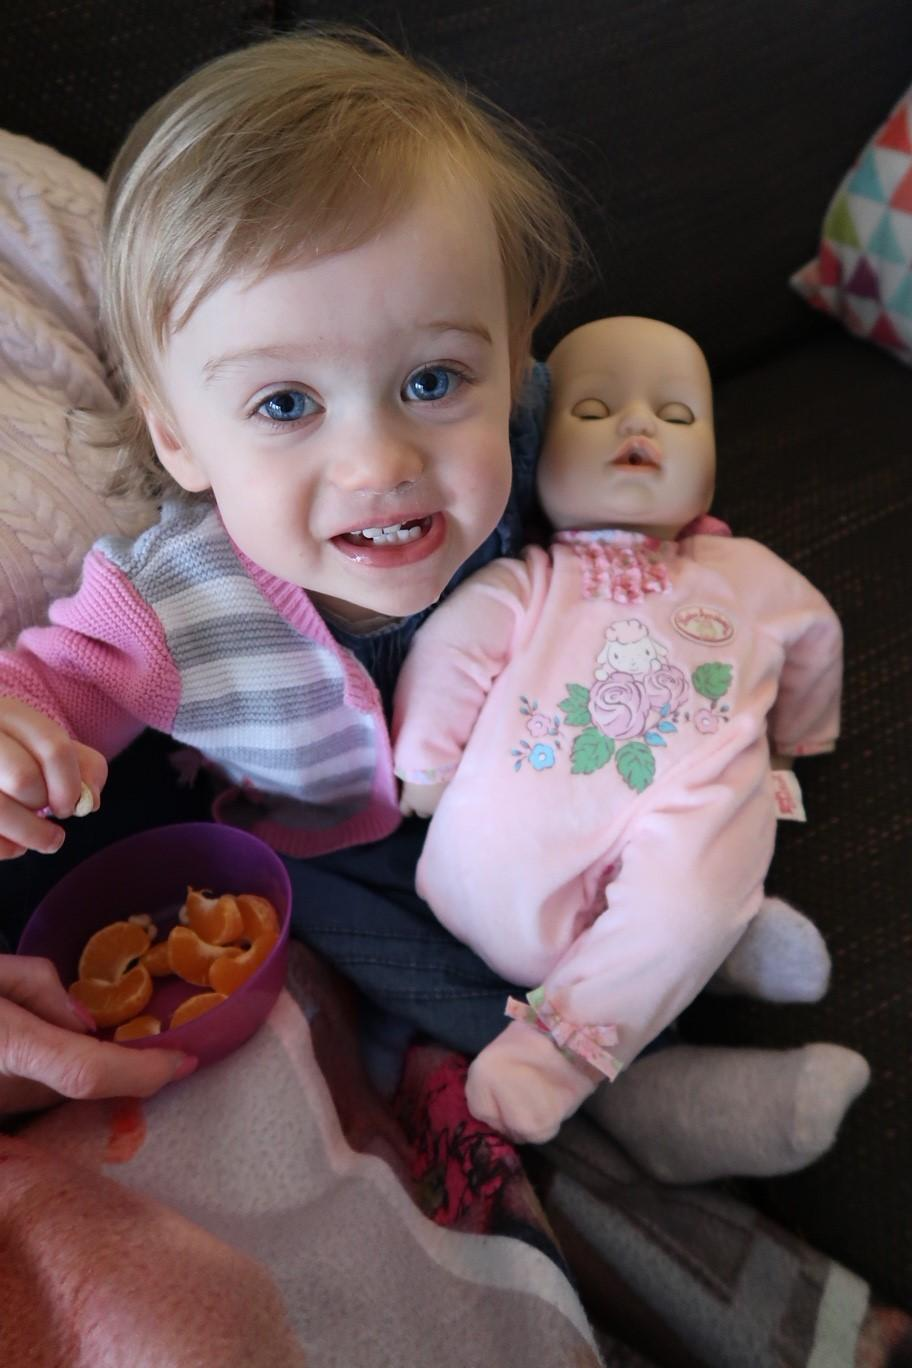 Baby girl playing with the Baby Annabell Interactive Doll